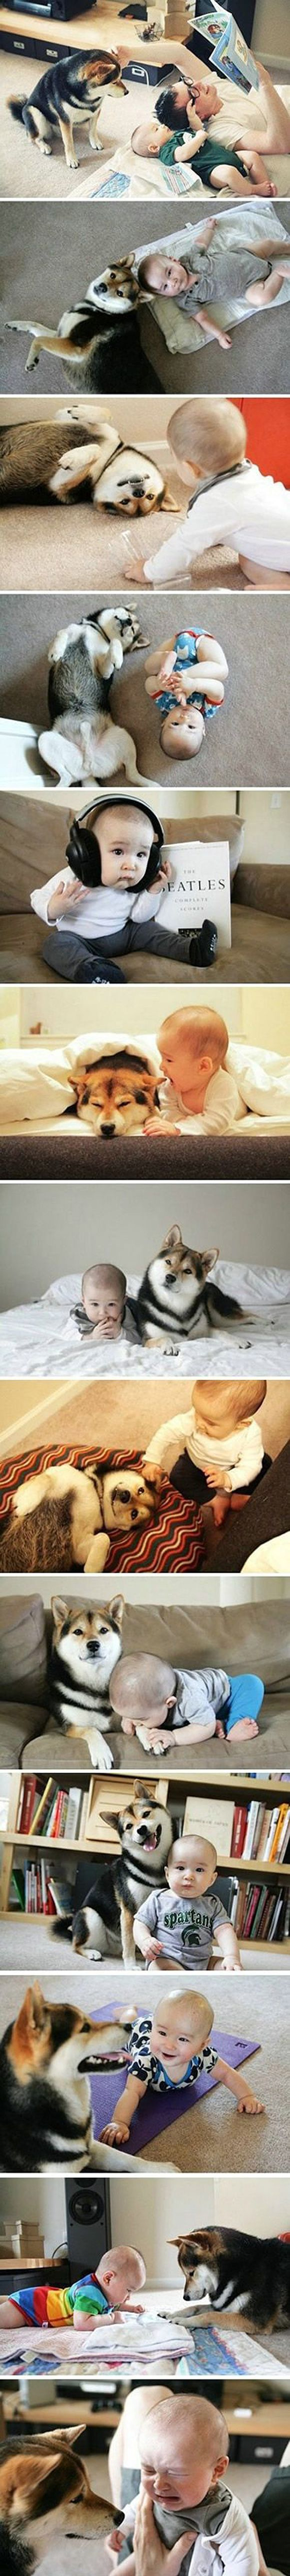 This is the making of a great relationship. A boy and his puppy.